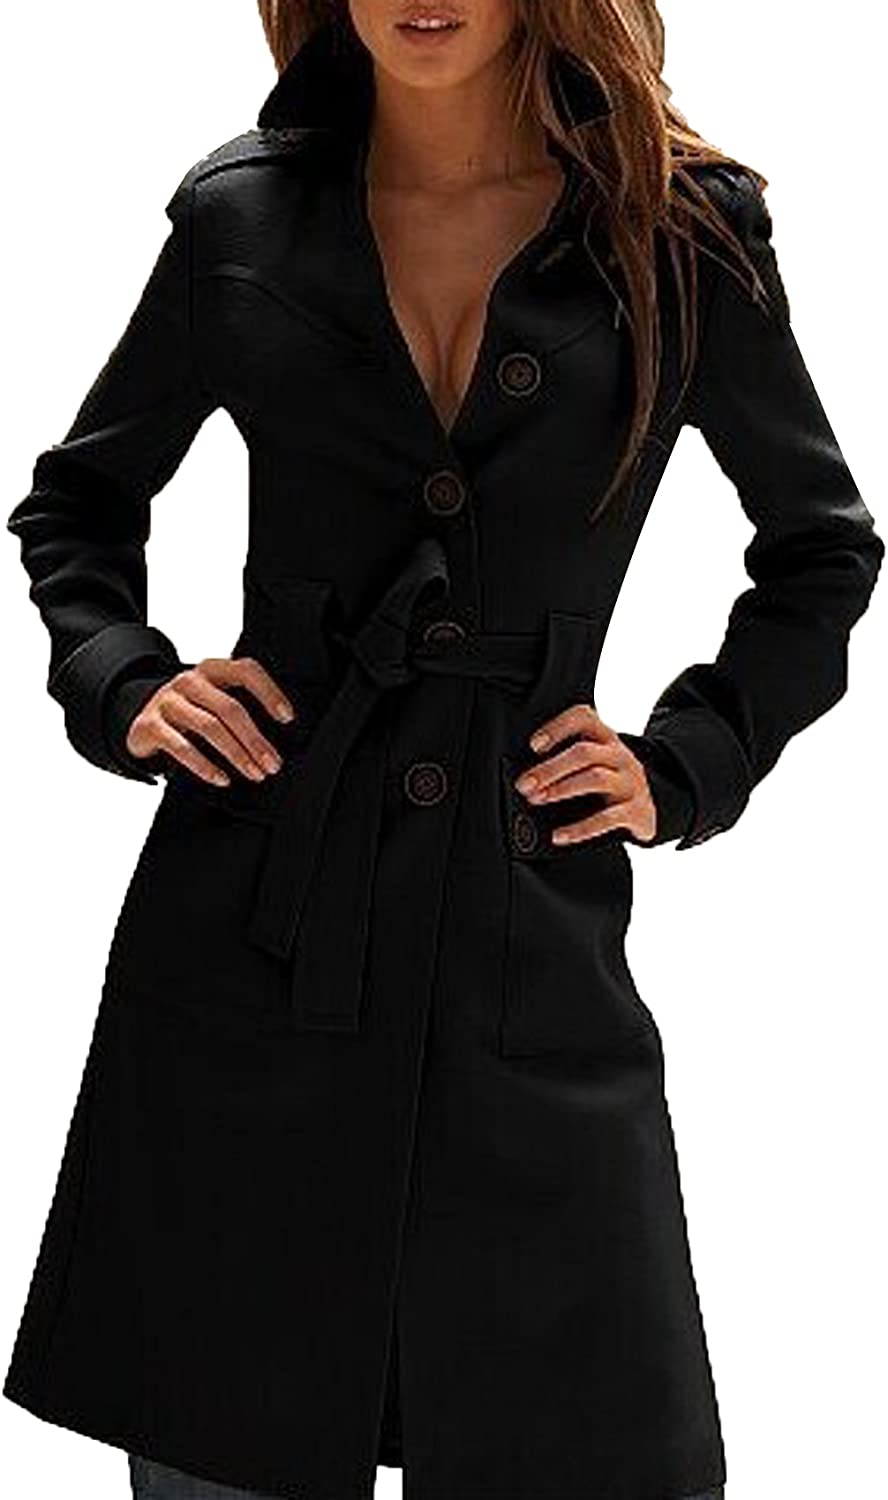 JOKHOO Women's Fashion Lapel SingleBreasted Trench Coat Wool Outerwear Coats